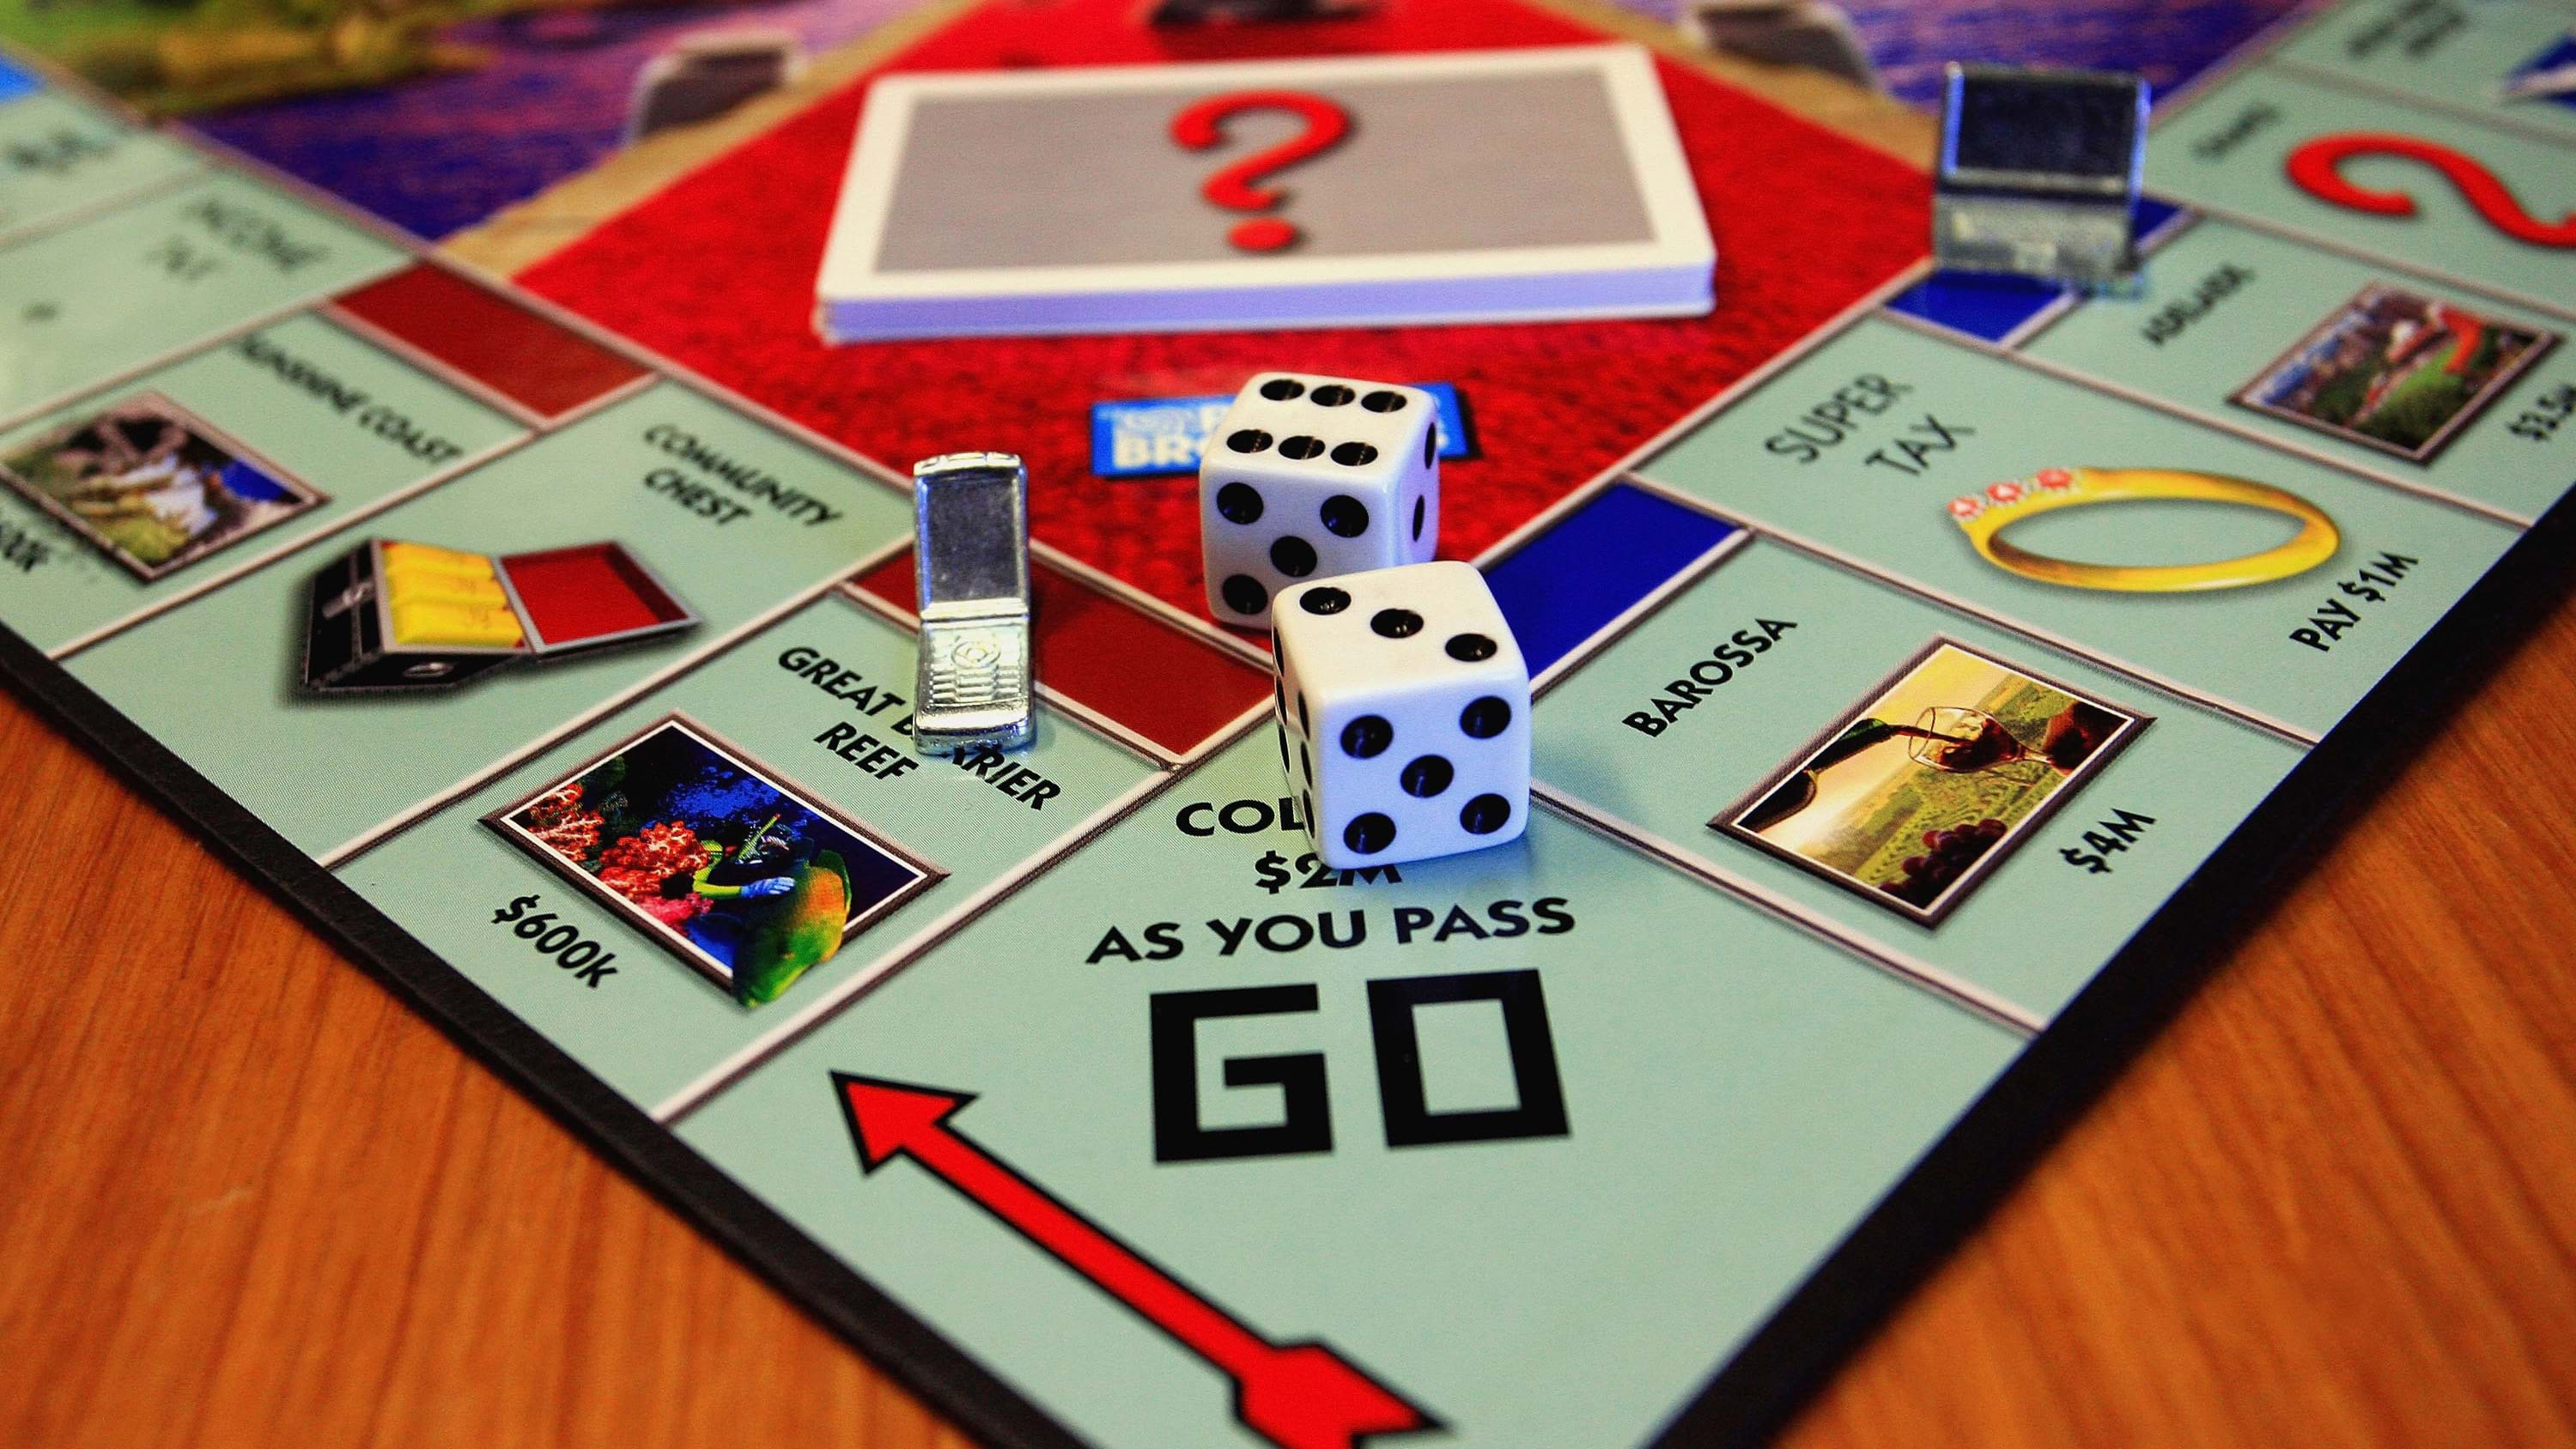 New Monopoly game encourages players to cheat